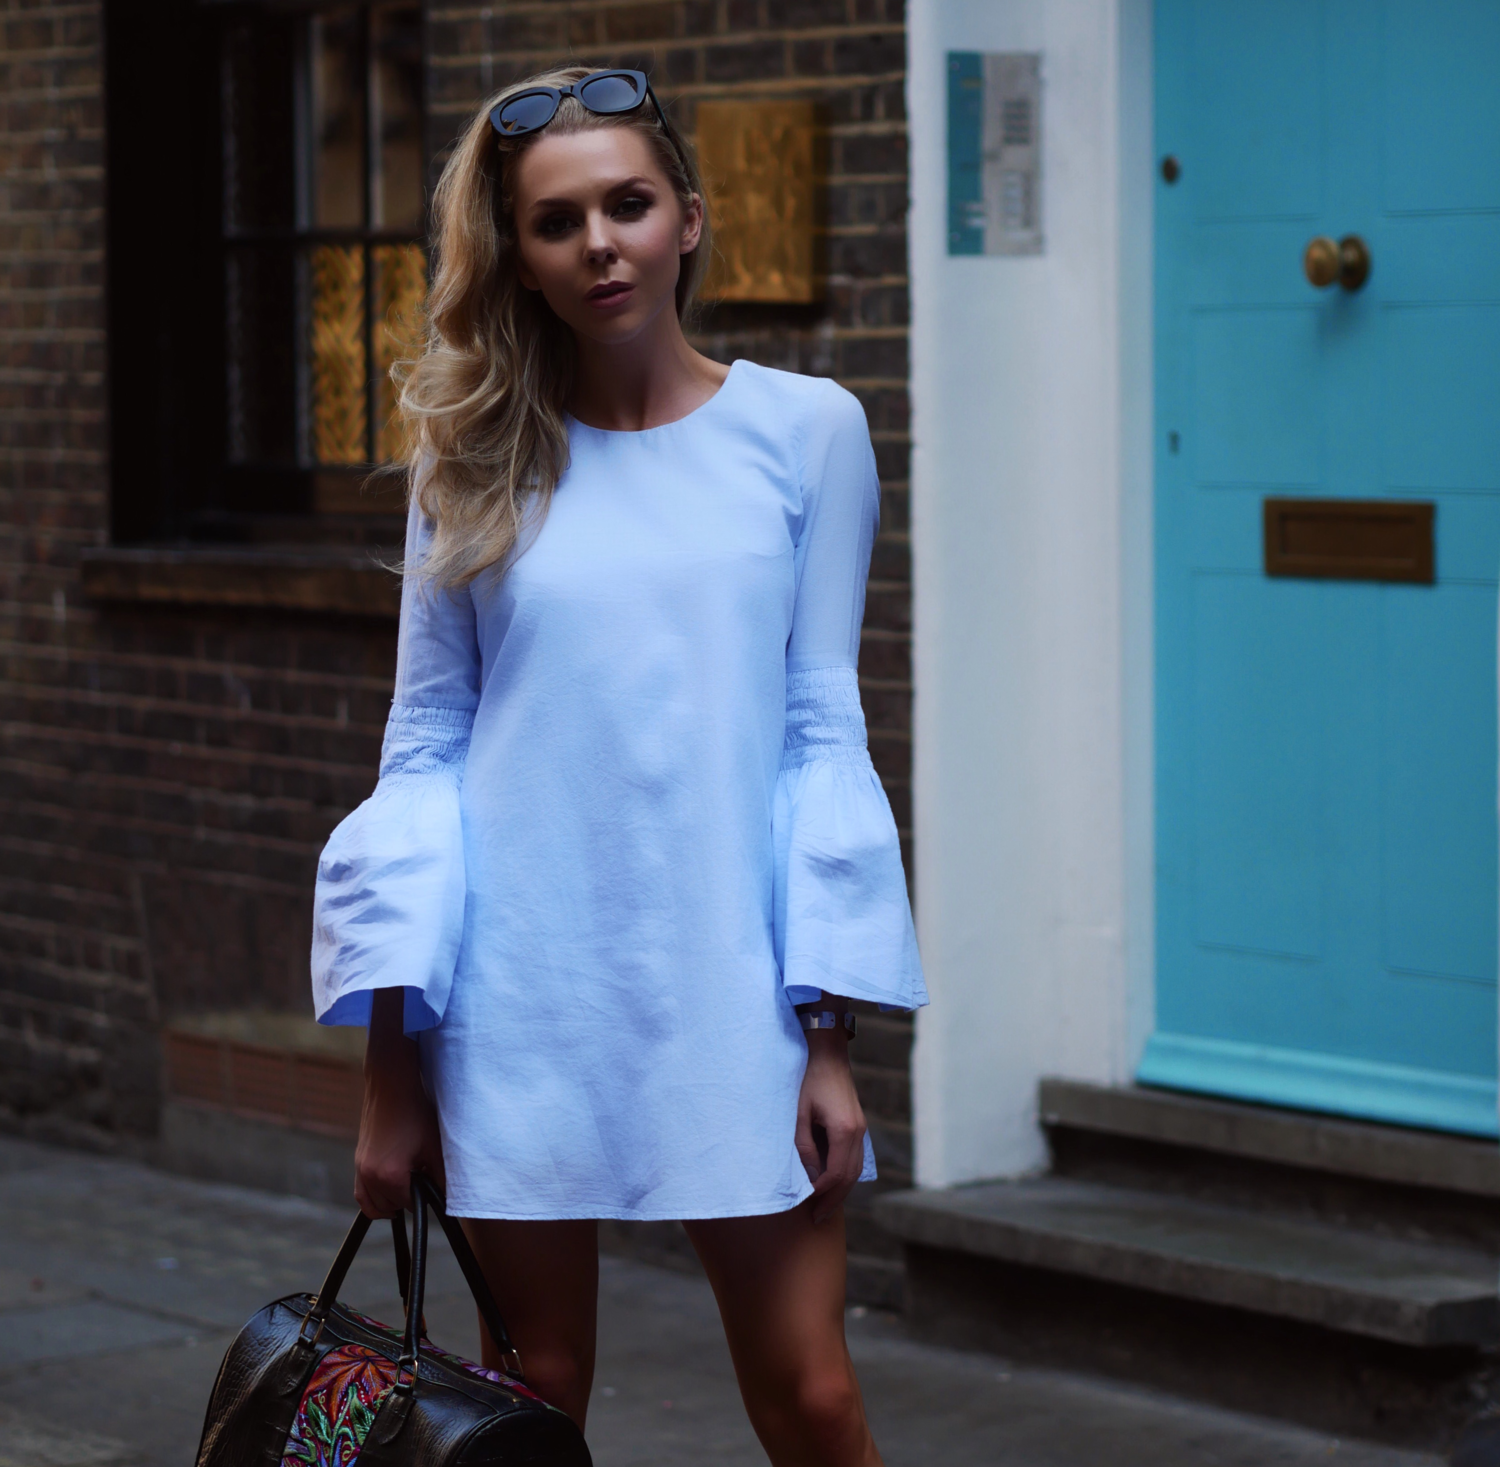 LONDON FASHION WEEK, STREET STYLE, FASHION, LONDON FASHION GIRL, LAURA BLAIR, RUFFLES